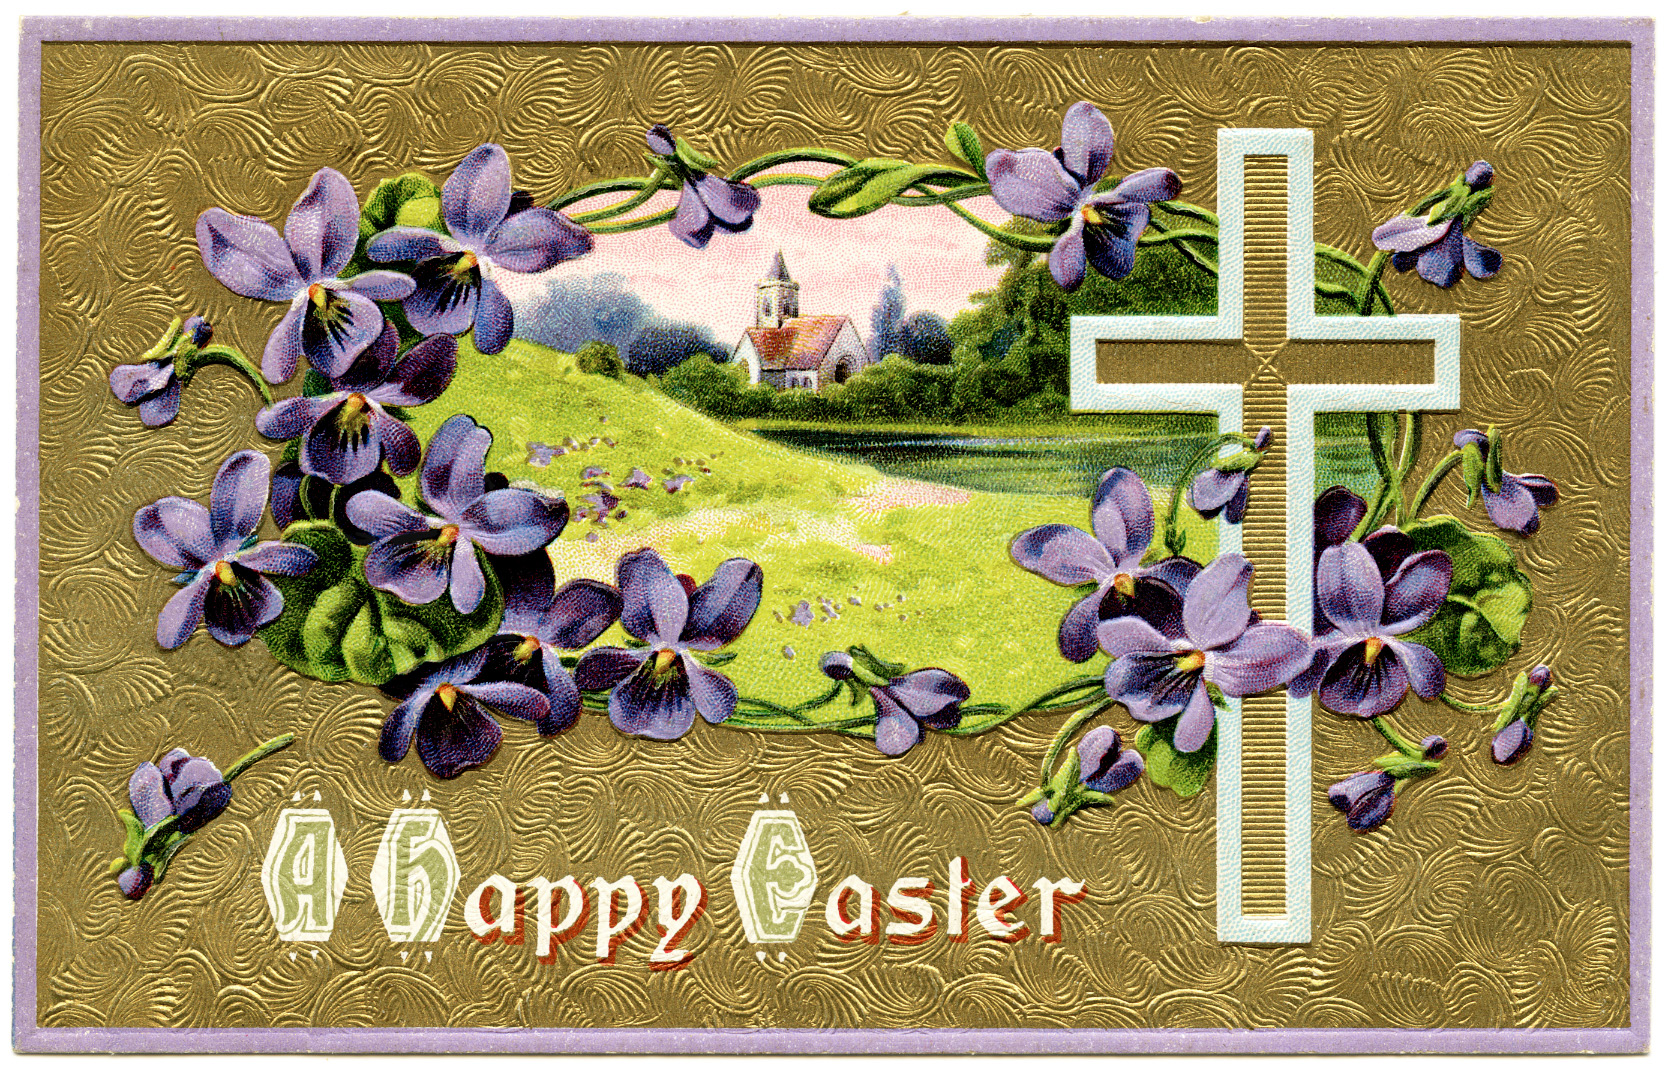 Happy Easter Religious Easter greetings: a happy